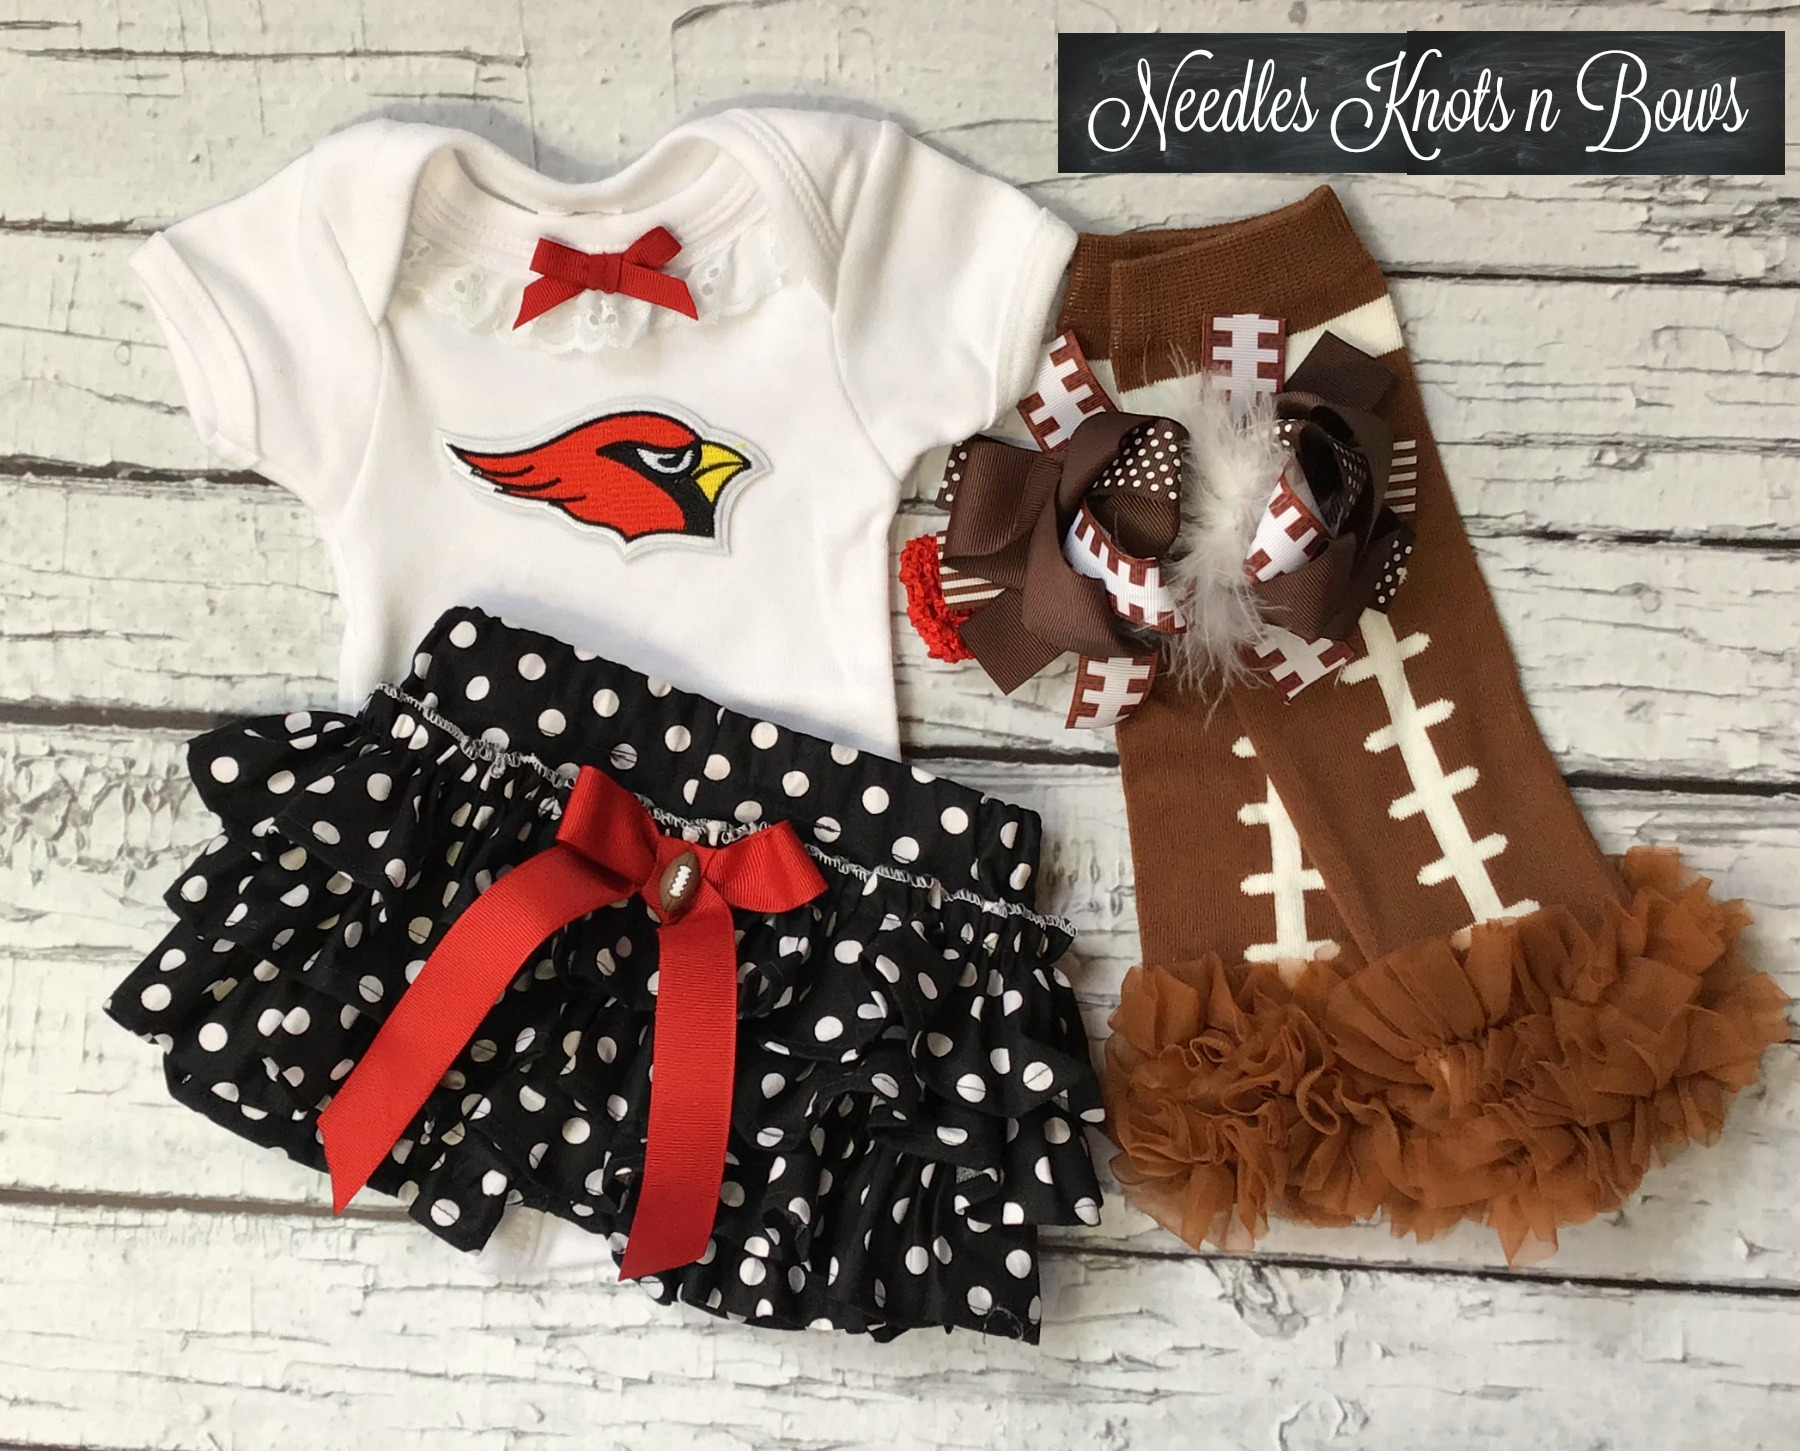 huge selection of 7f1e8 e302d Arizona Cardinals Cheerleader Outfit, Girls Cardinals Coming Home Outfit,  Cardinals Baby Shower Gift, Toddlers, Newborn to size 4 from Needles Knots  n ...